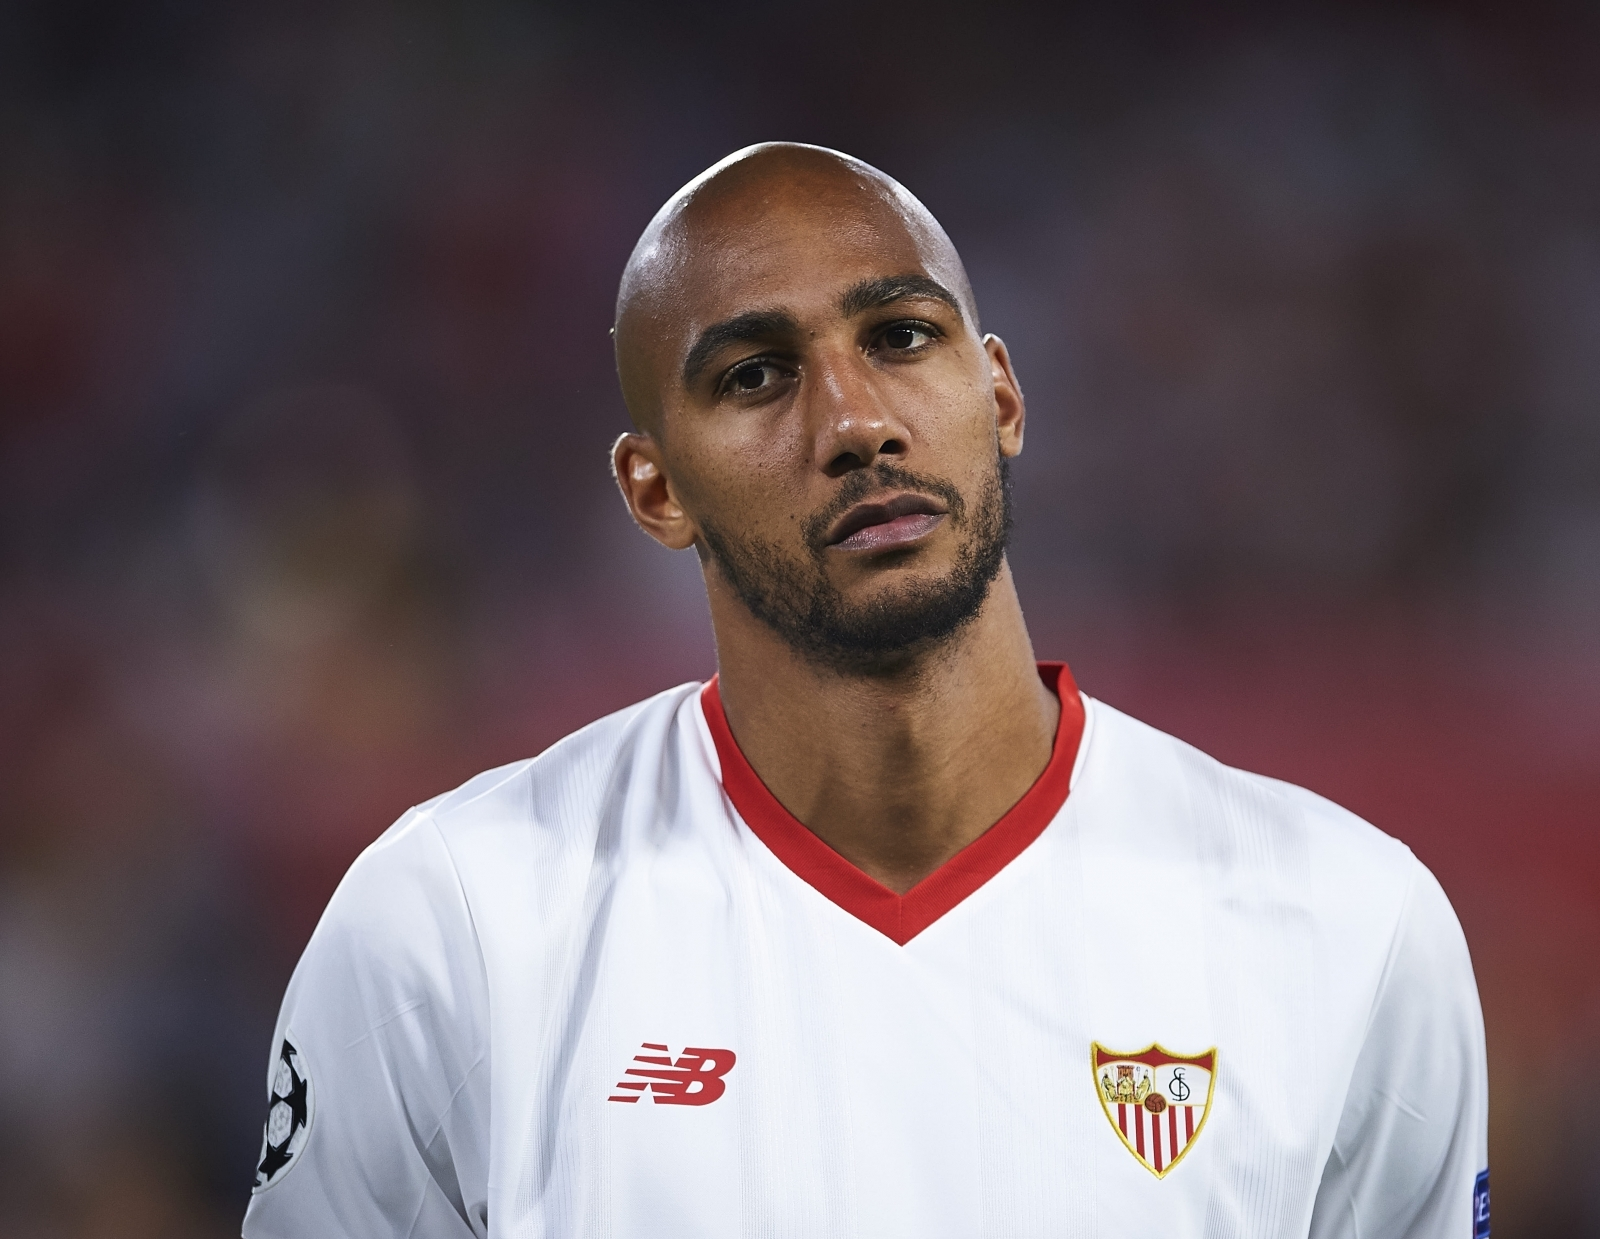 N'Zonzi denies Arsenal move